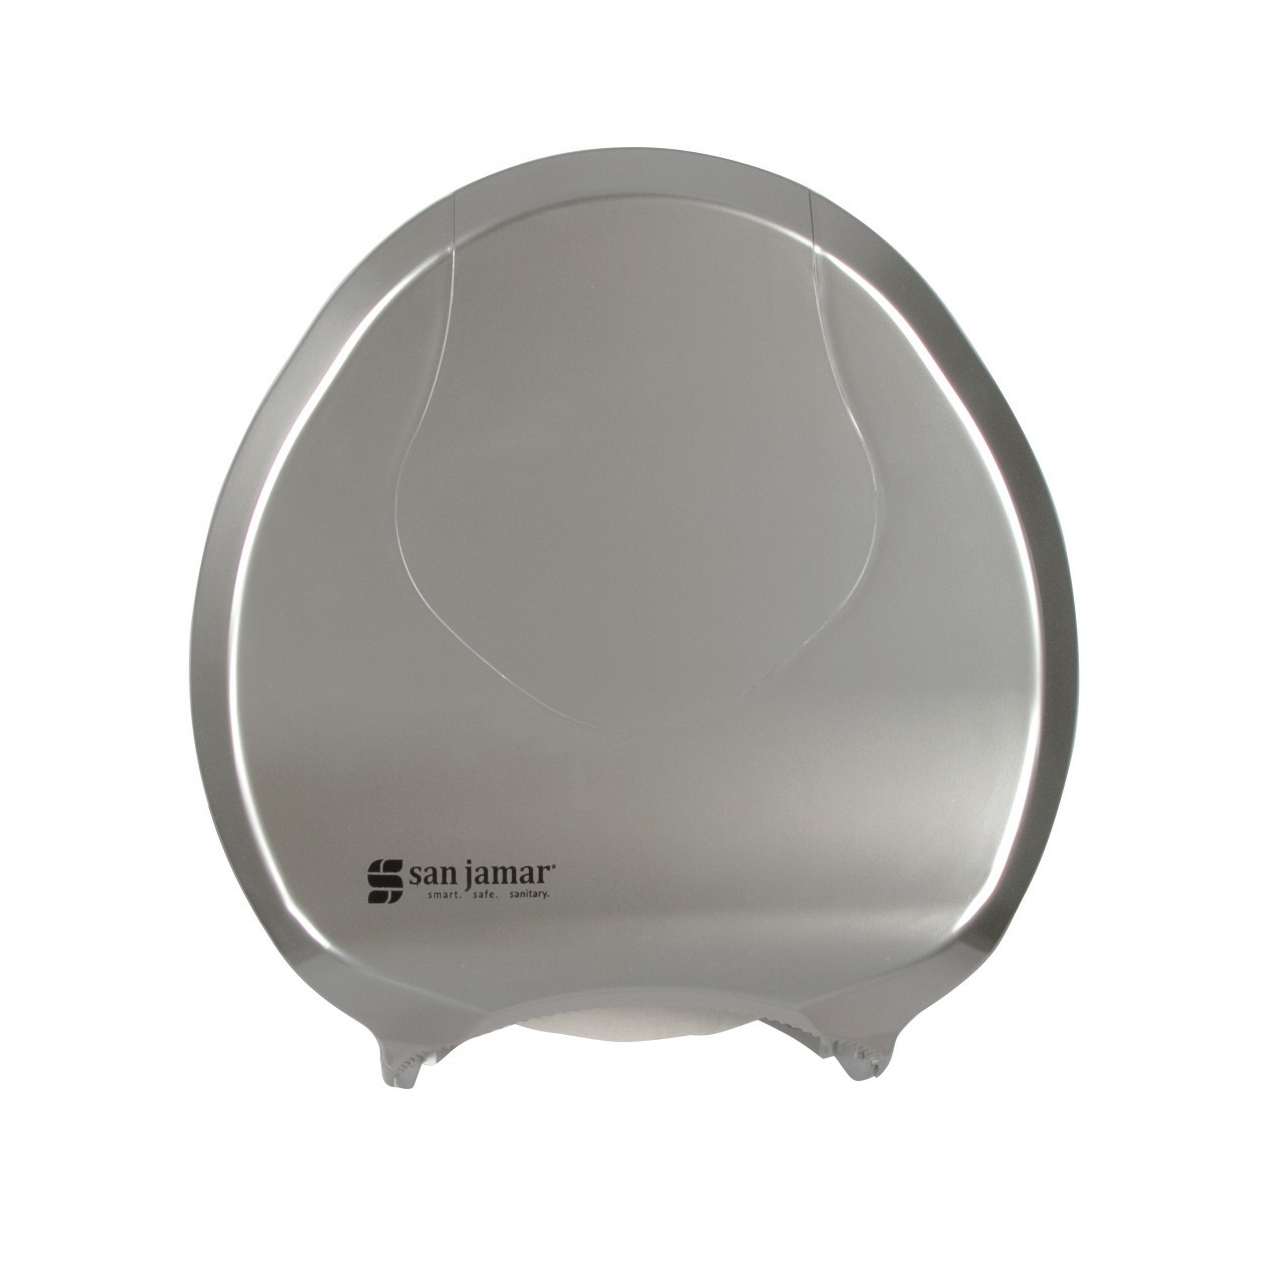 San Jamar R2070SS toilet tissue dispenser